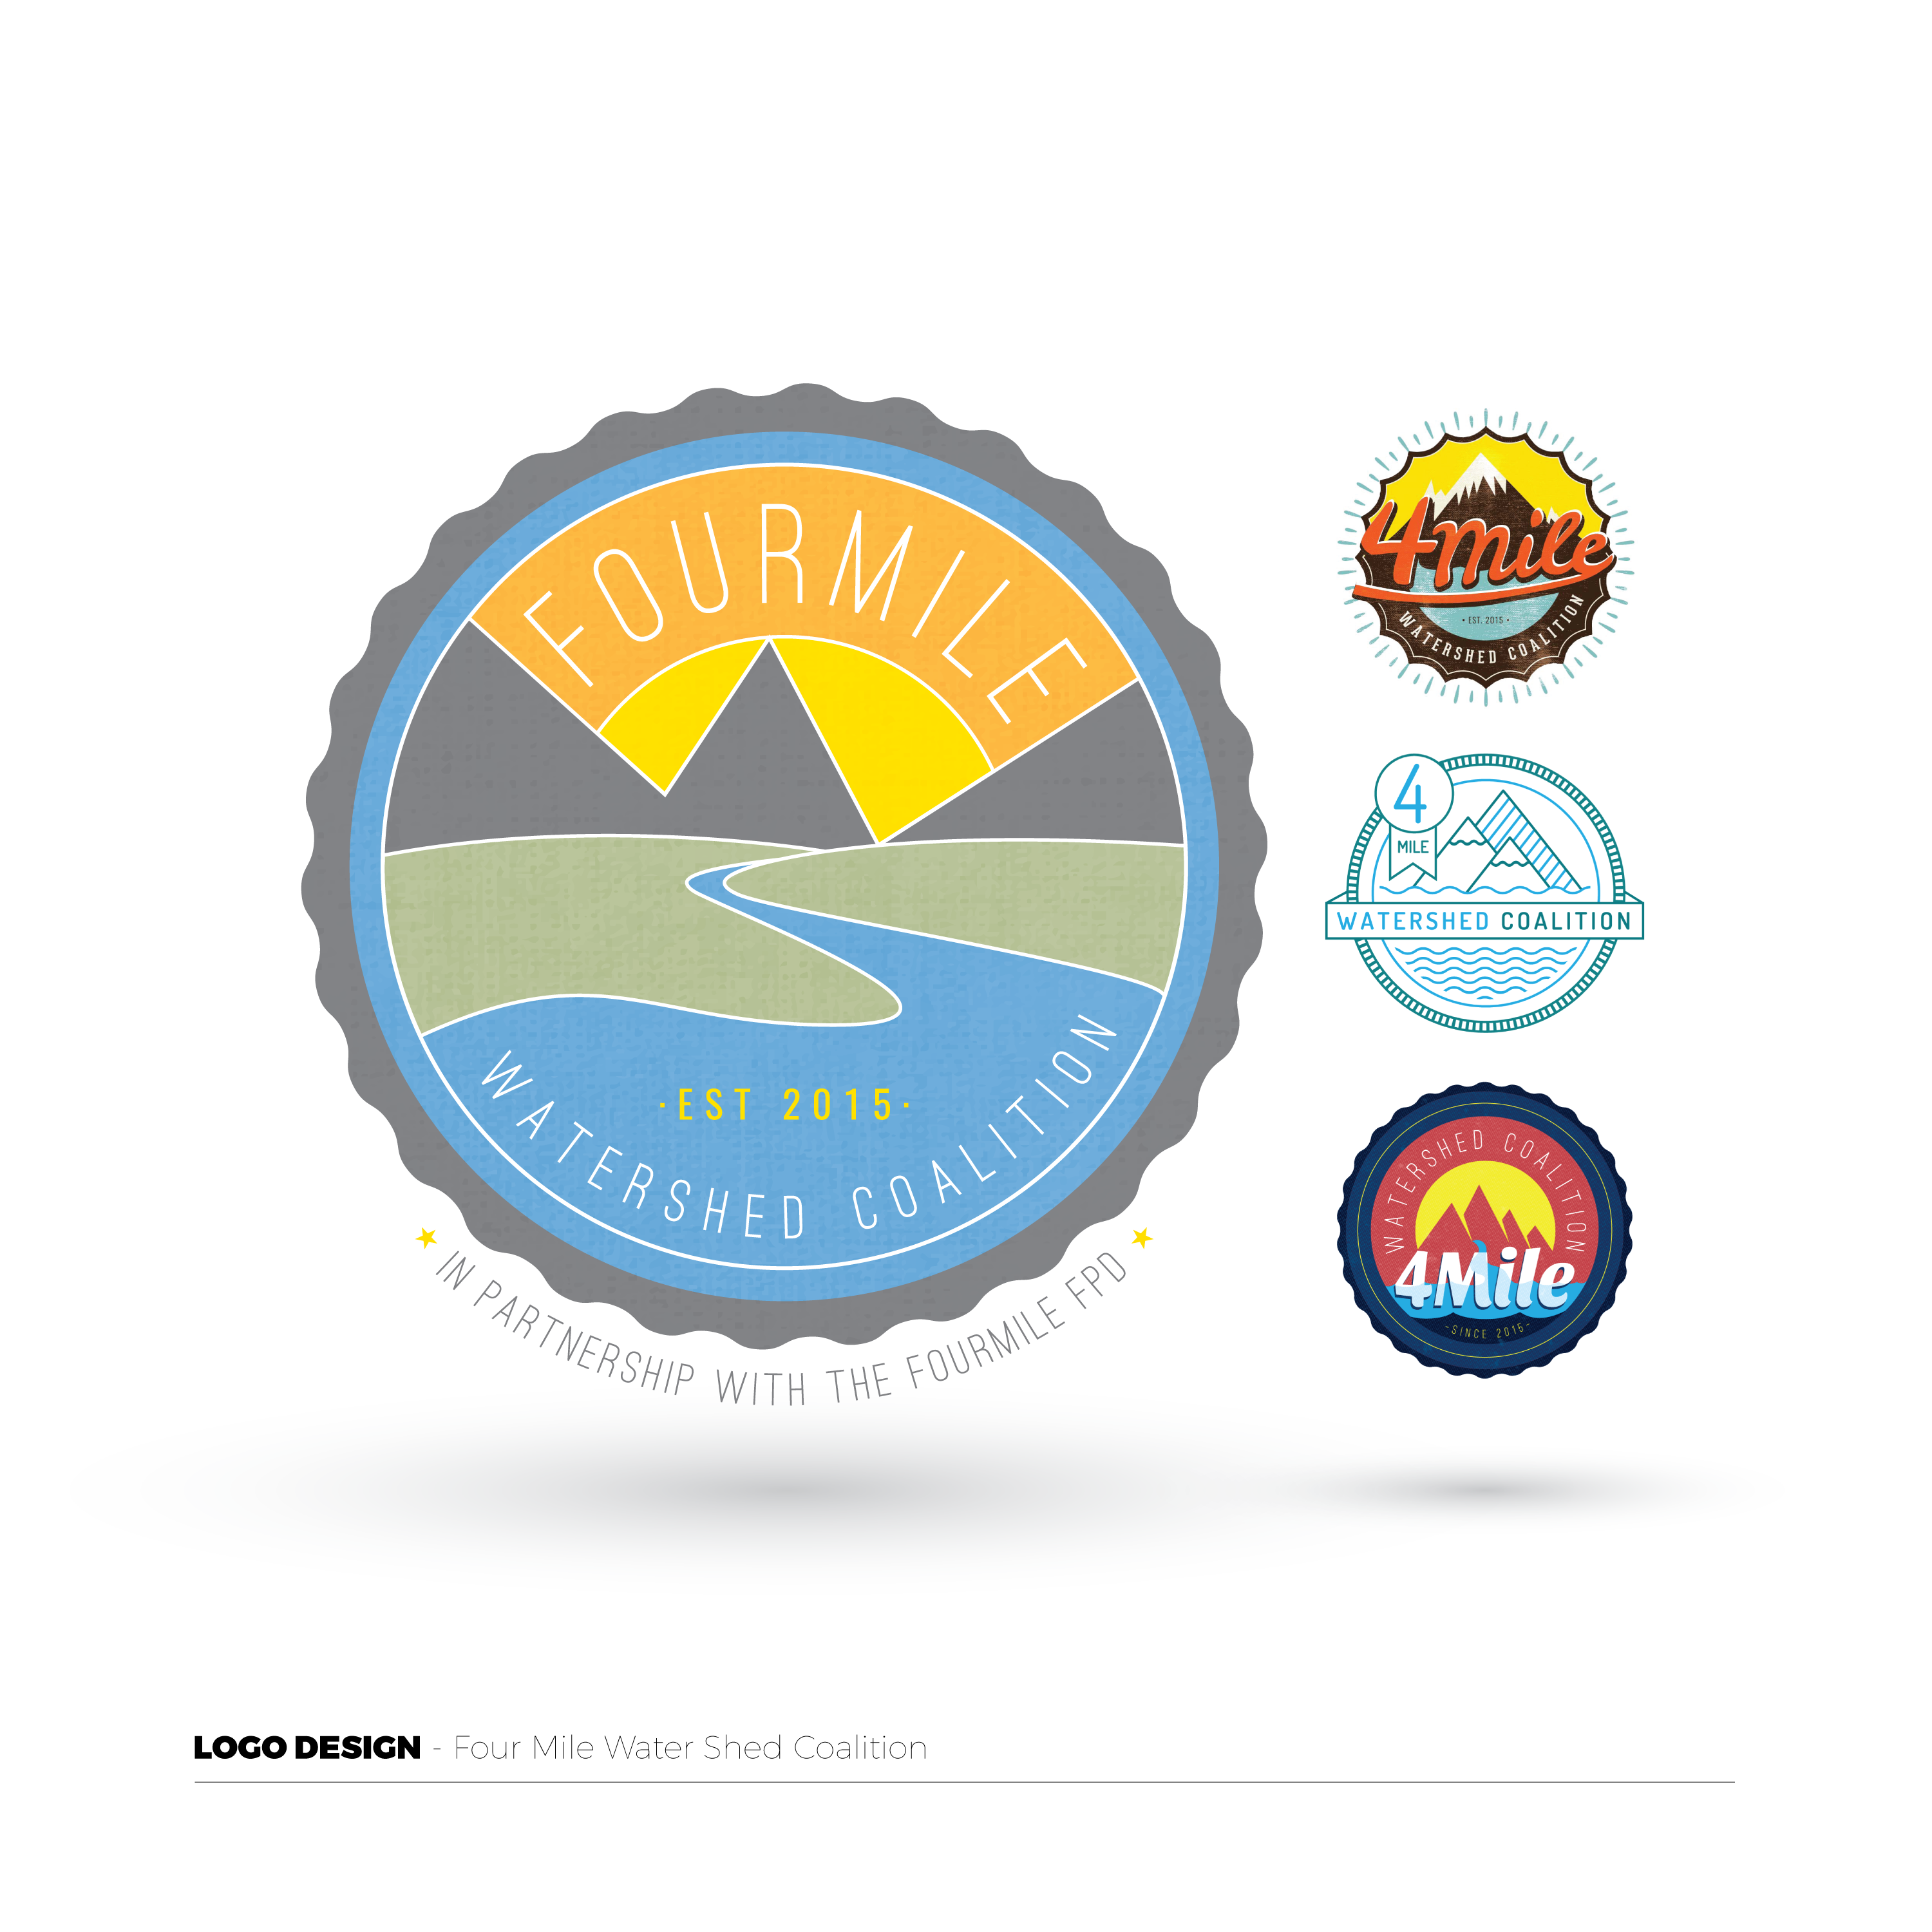 4 Mile Watershed Coalition Logo